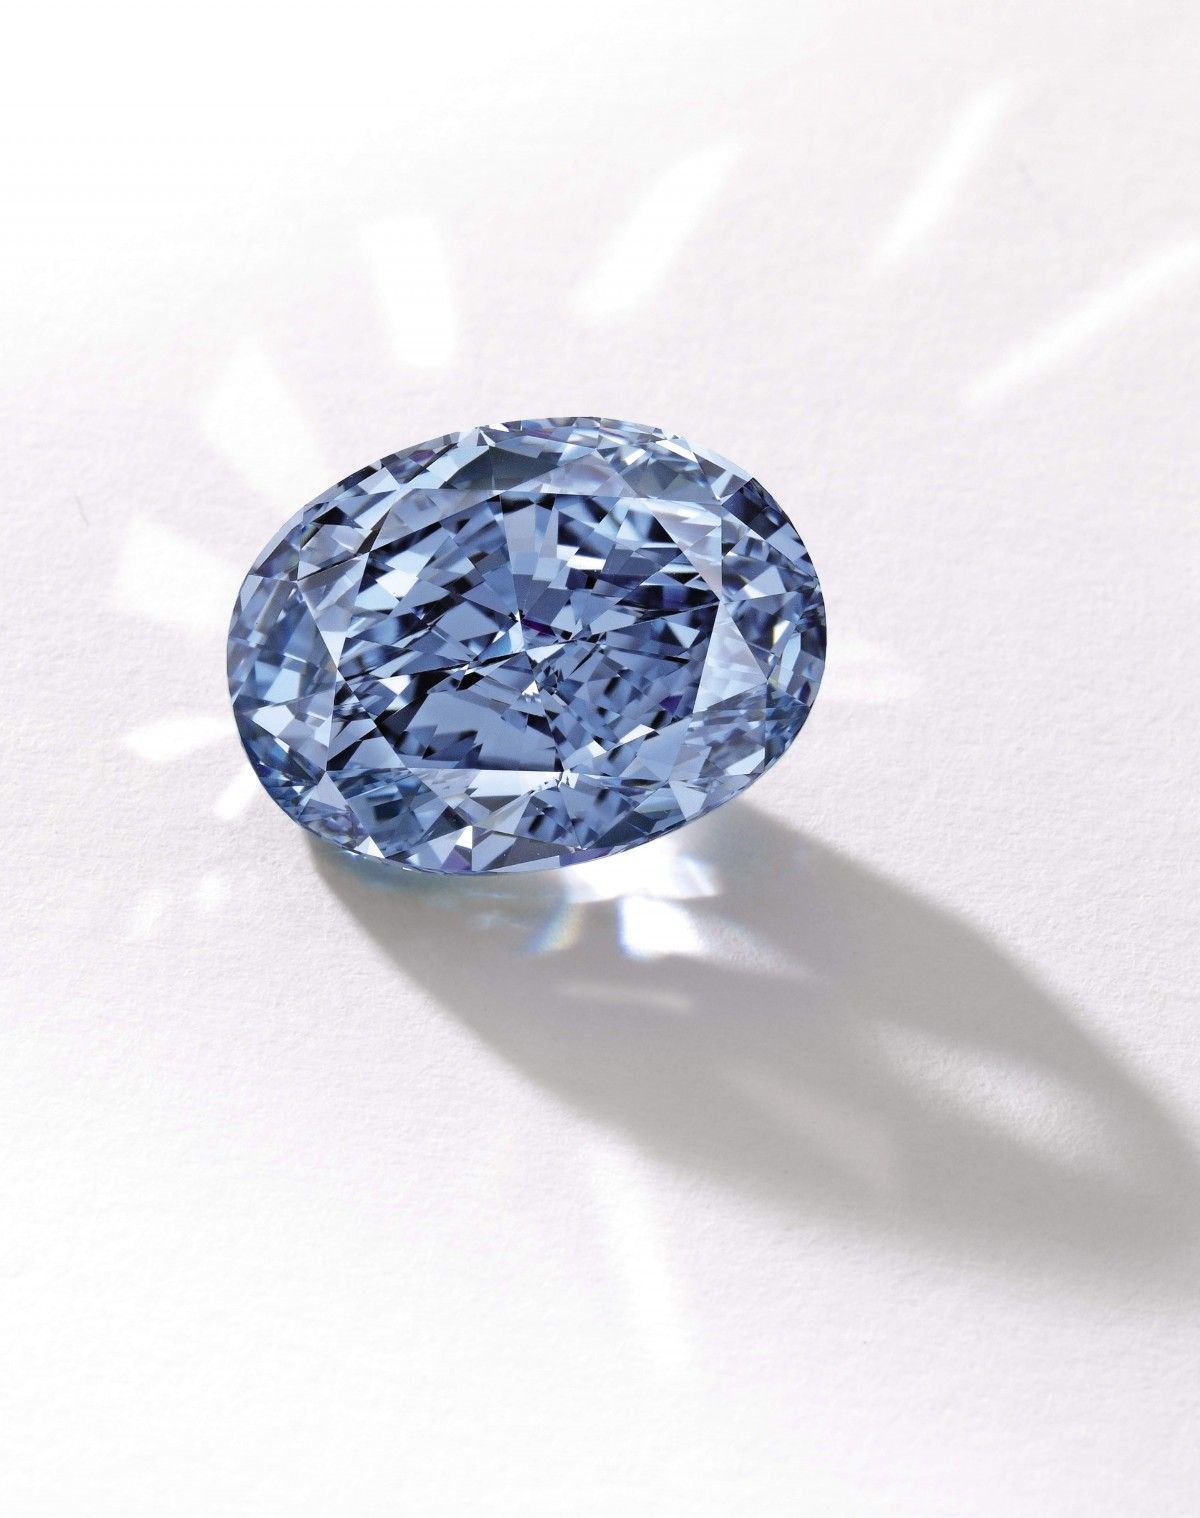 De Beers Millennium Blue	$32 million